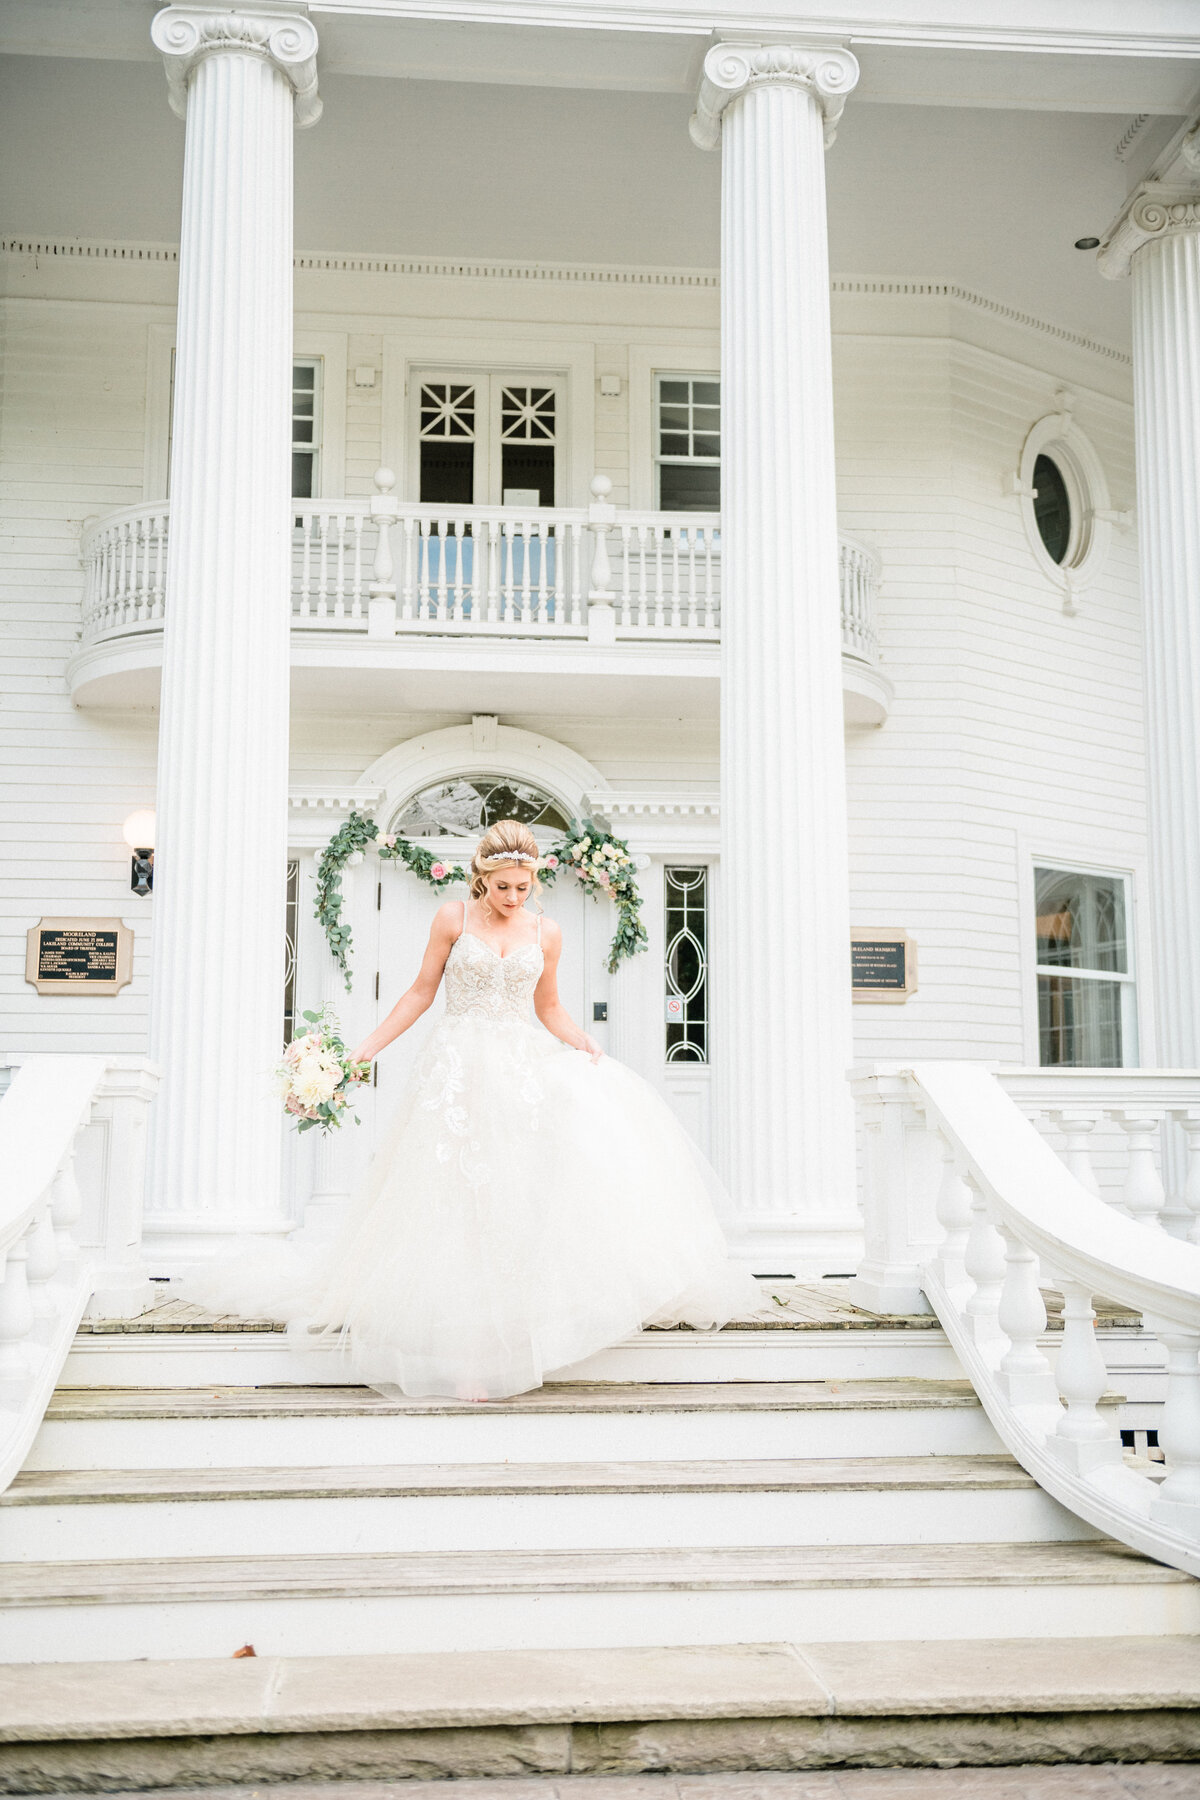 Elegant wedding planned by columbus ohio wedding planner